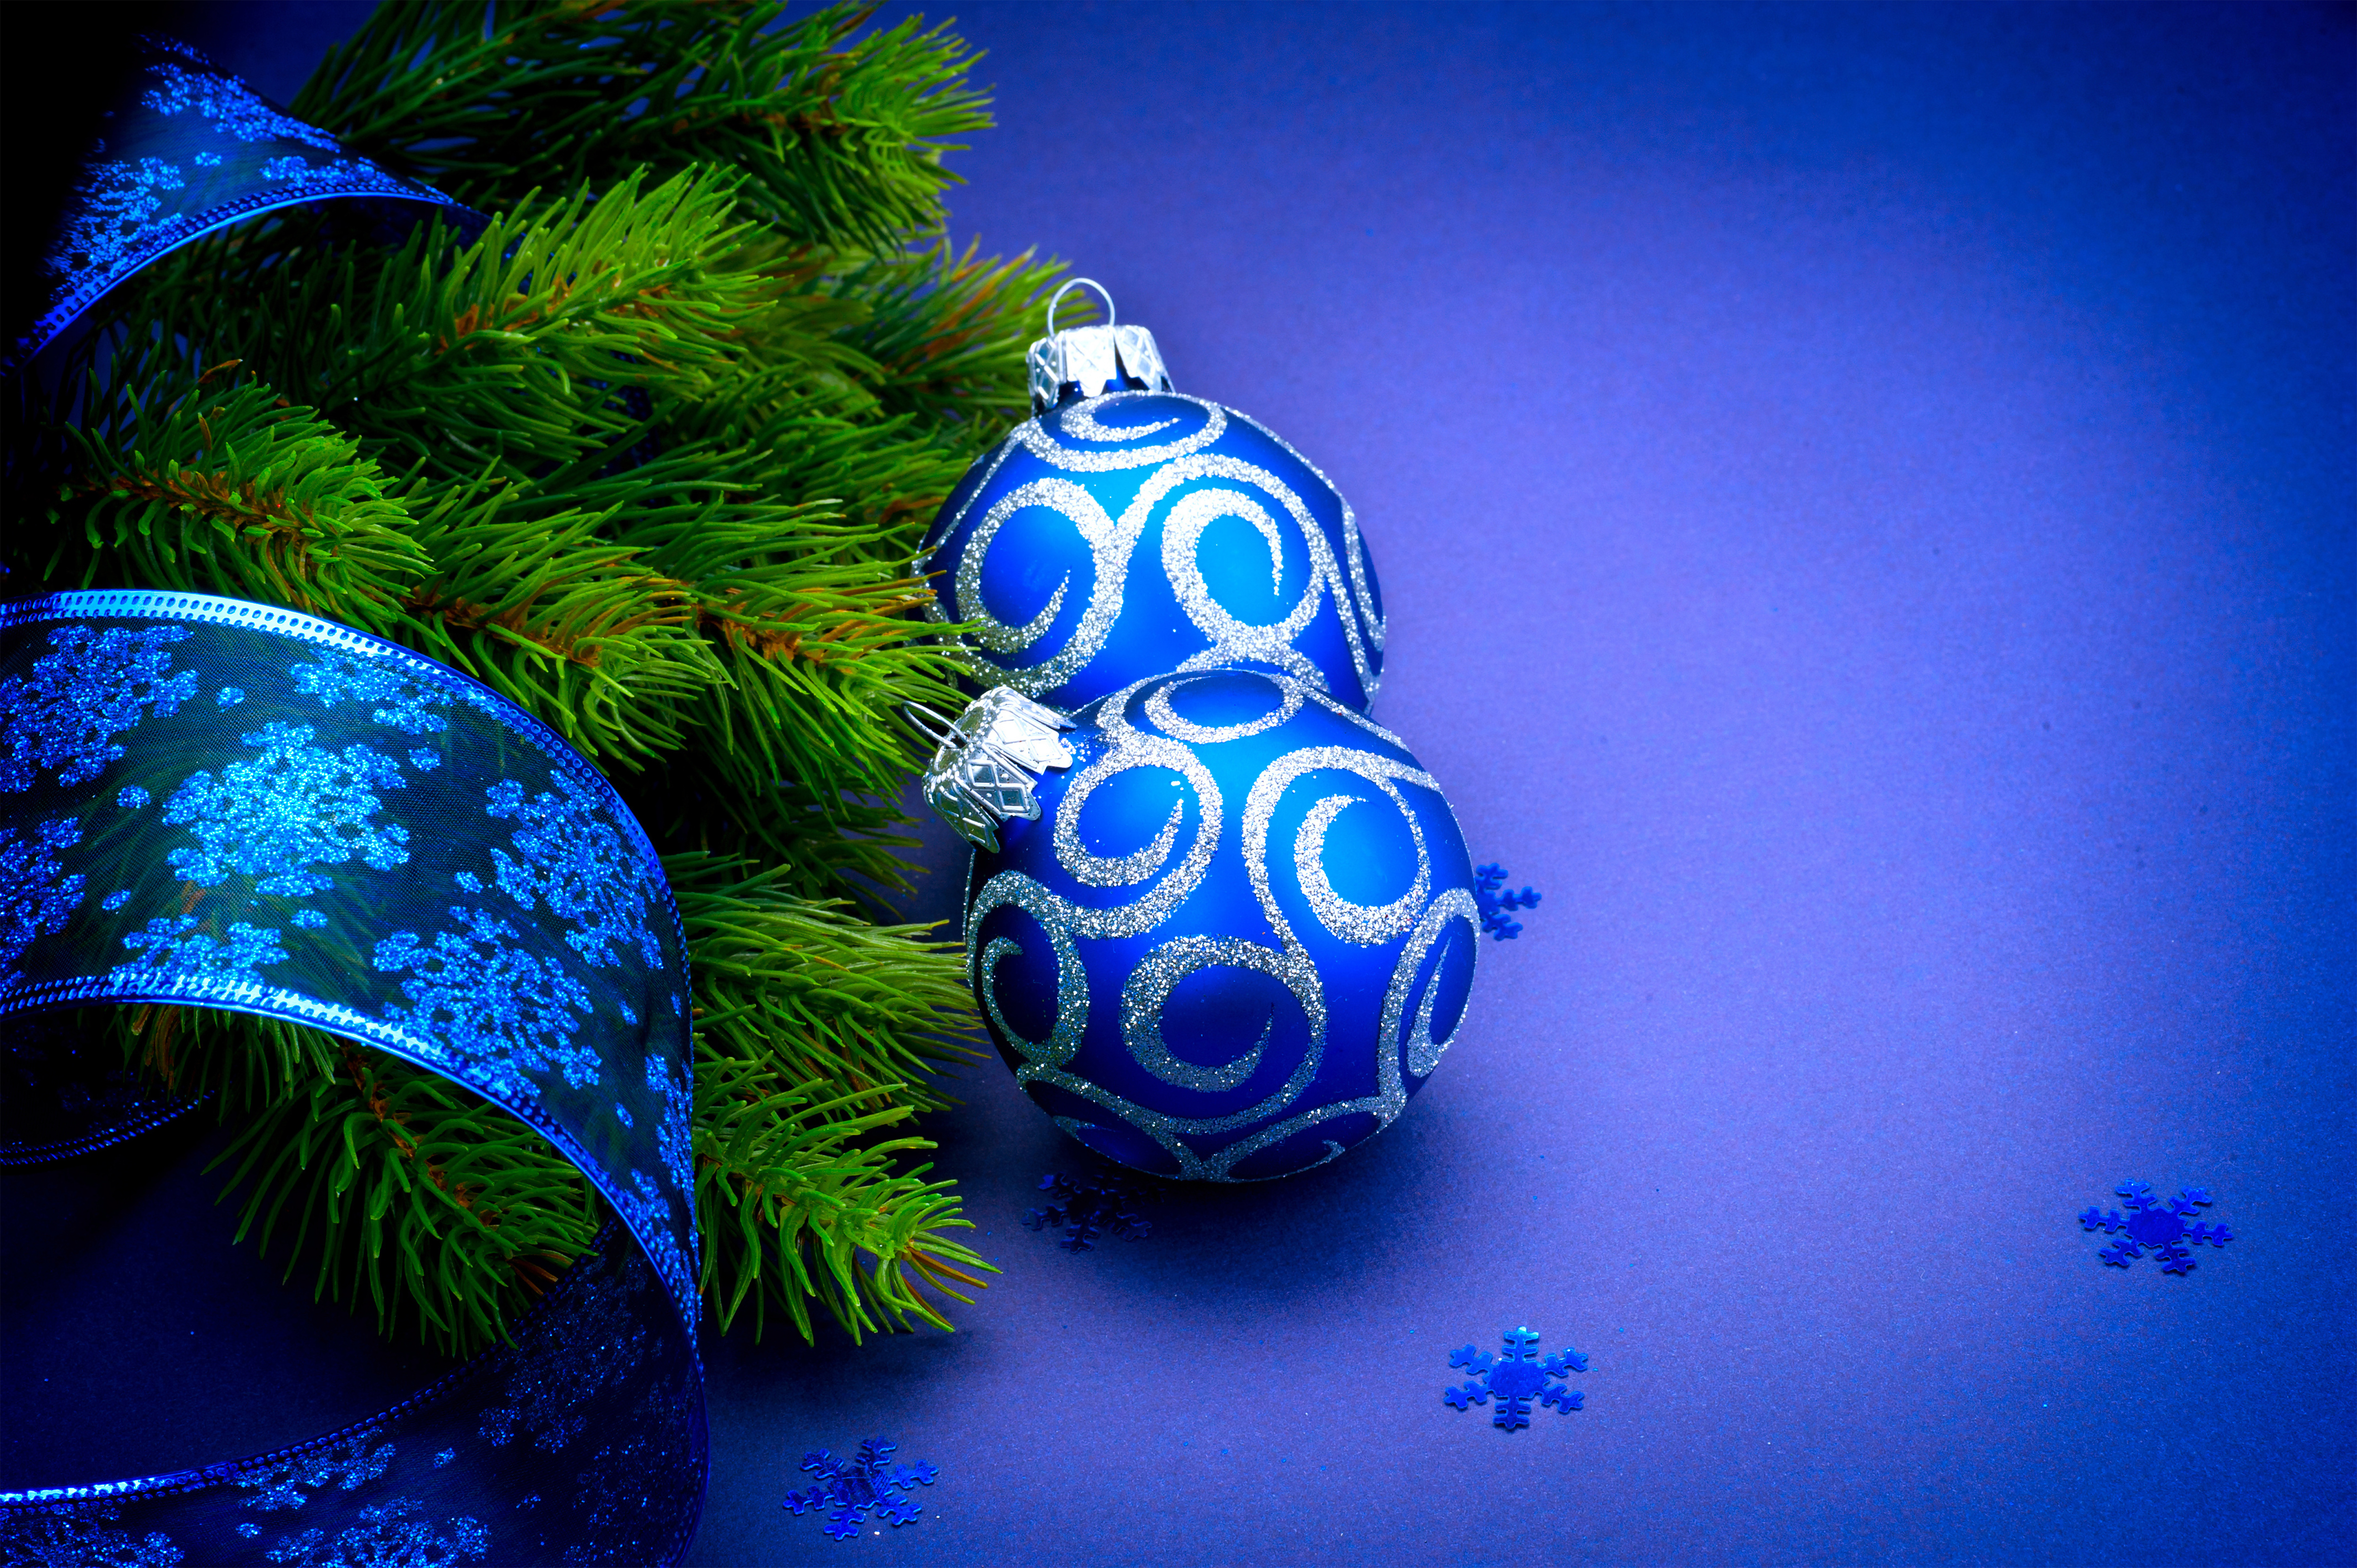 Fall Leaves Clip Art Wallpaper Christmas Background With Blue Christmas Balls Gallery